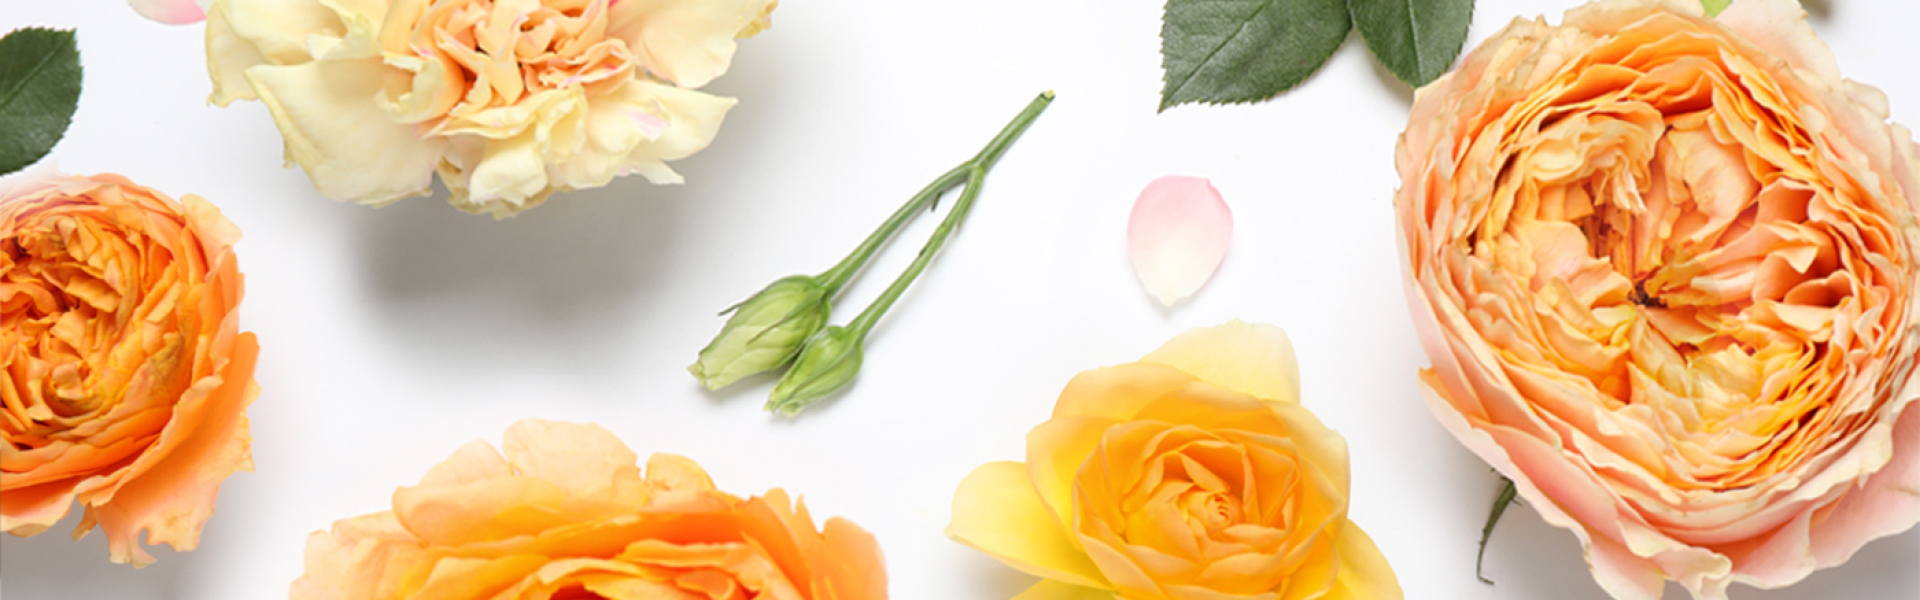 1210 RymanNZ Mothers Day Competition Website Banner 1920x600